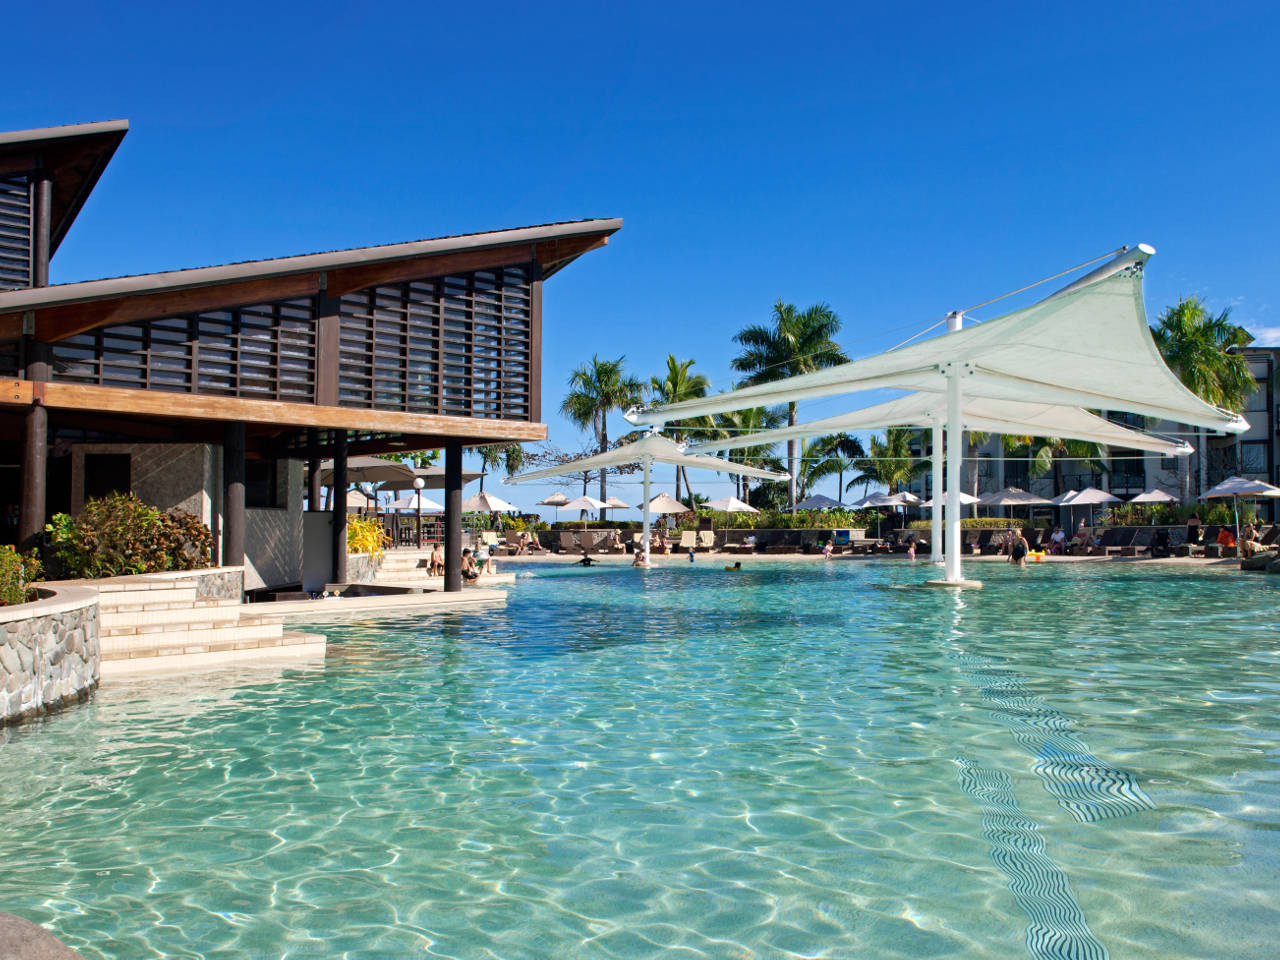 Radisson Fiji Pool | Point Hacks